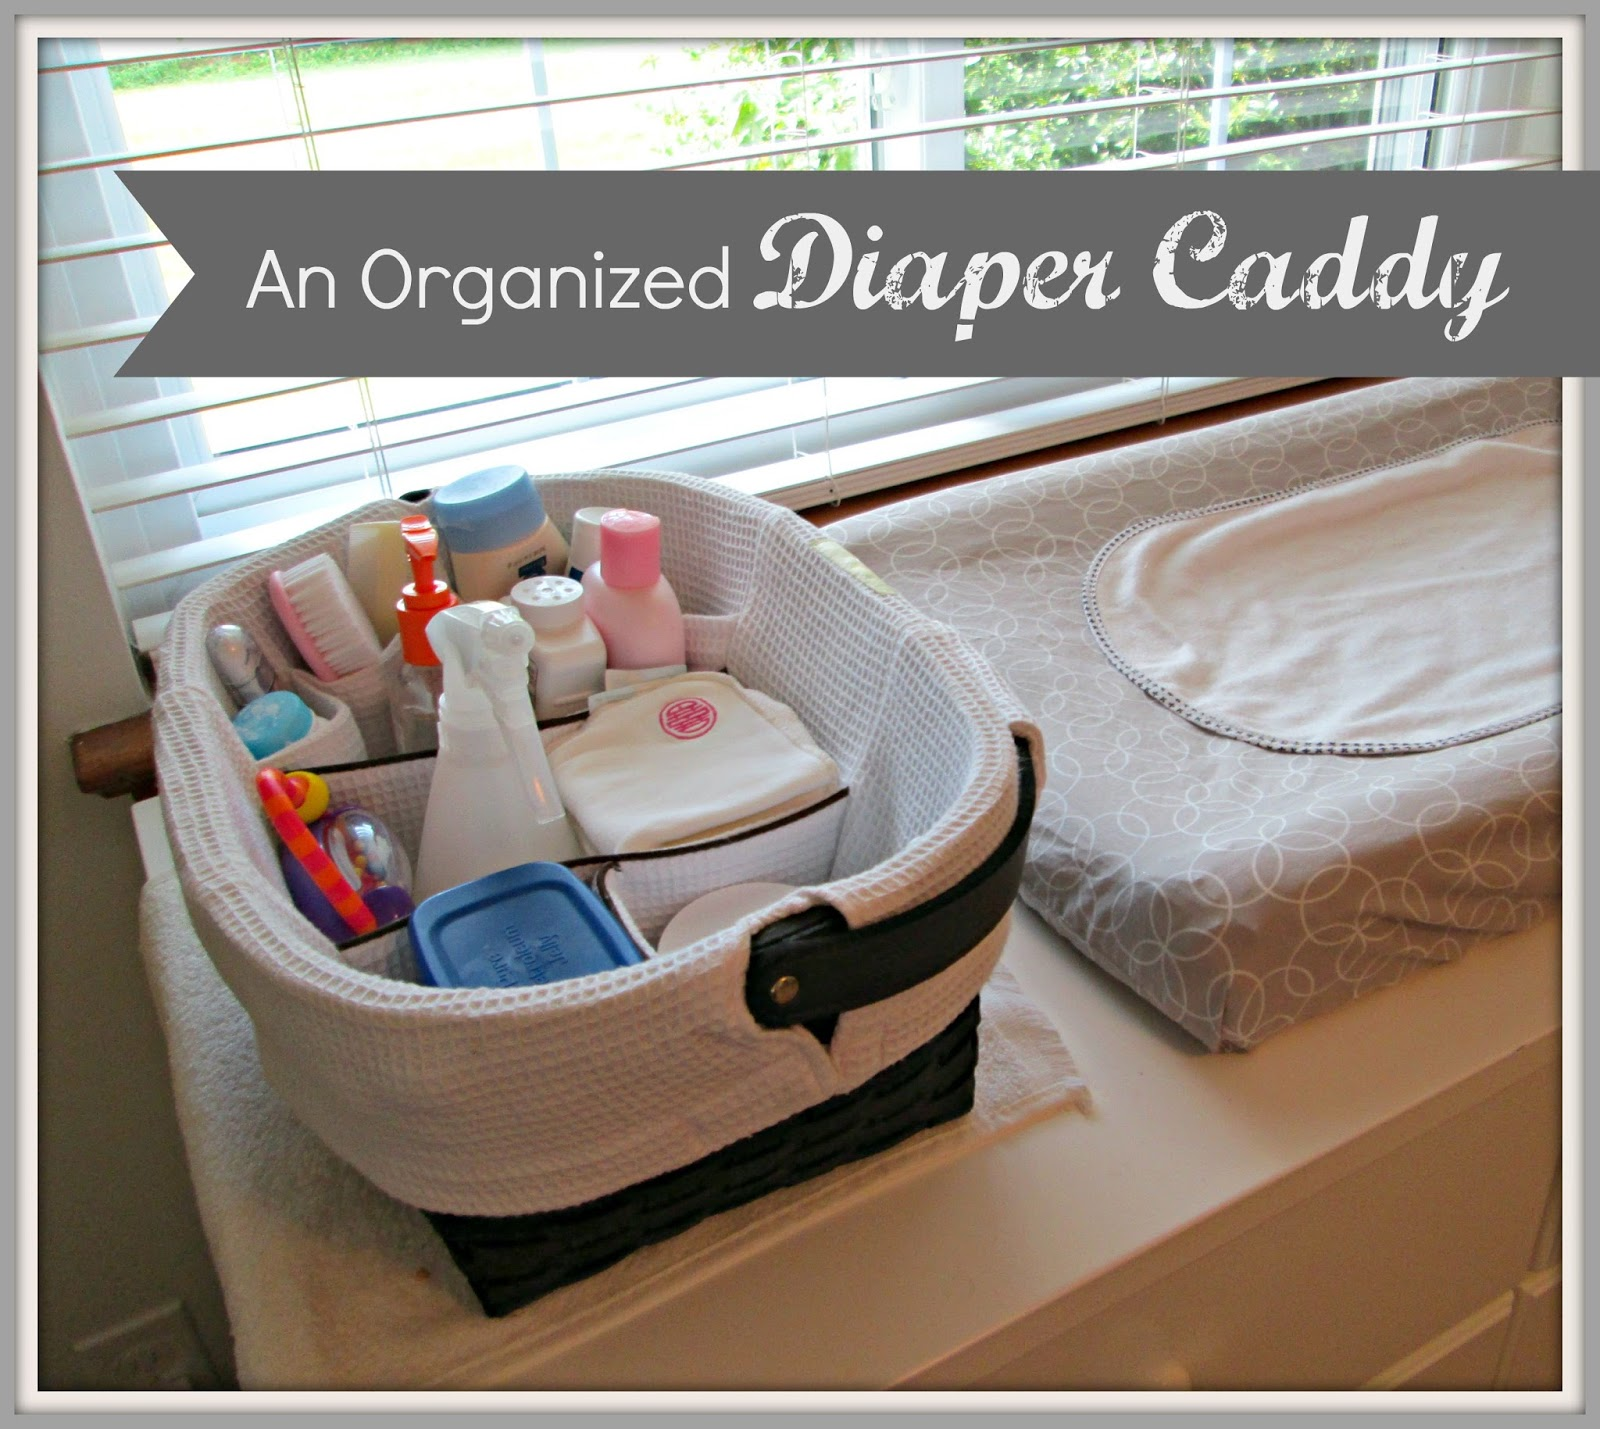 A Diaper Caddy You Know The Storage Container Set On Top Or Within Easy Reach Of Your Changing Table Where Can Essentials